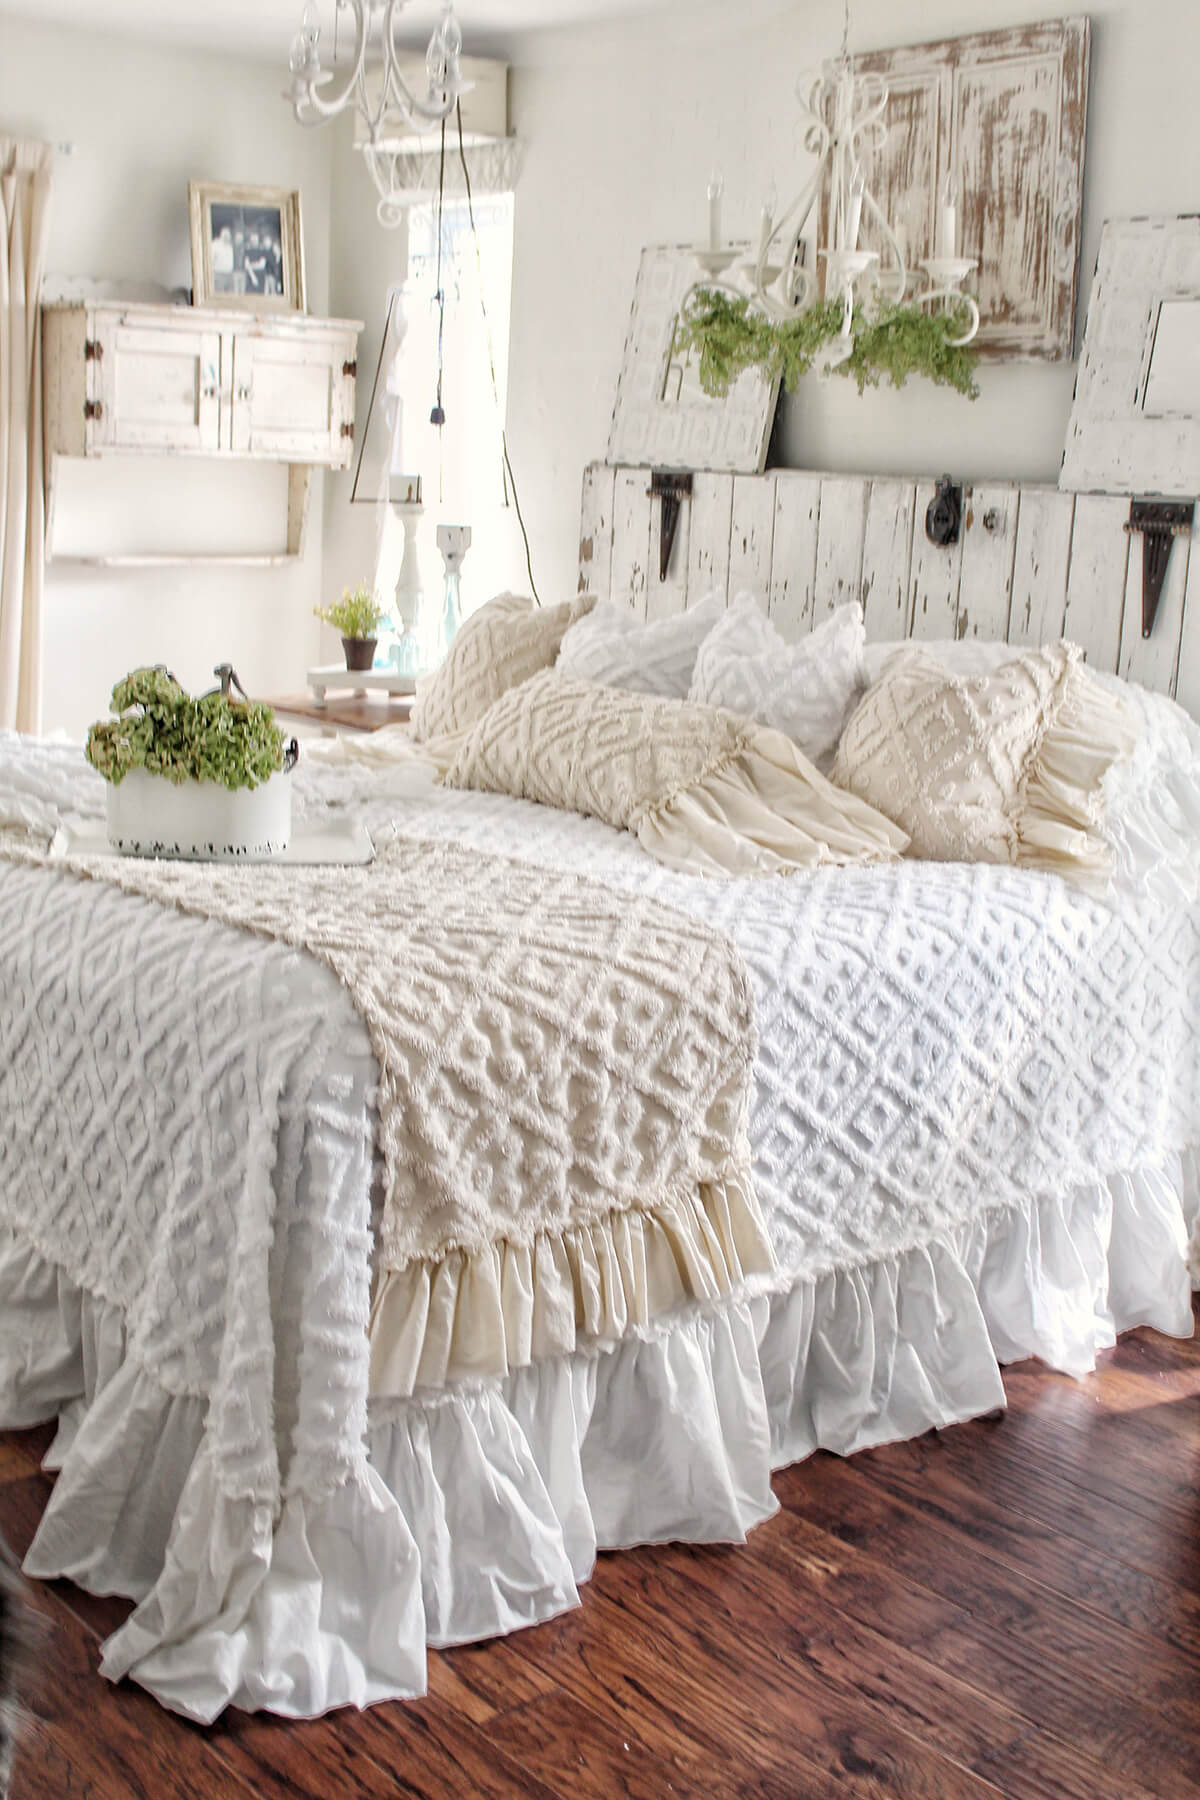 White Distressed Wood and Snuggly Chennile Linens